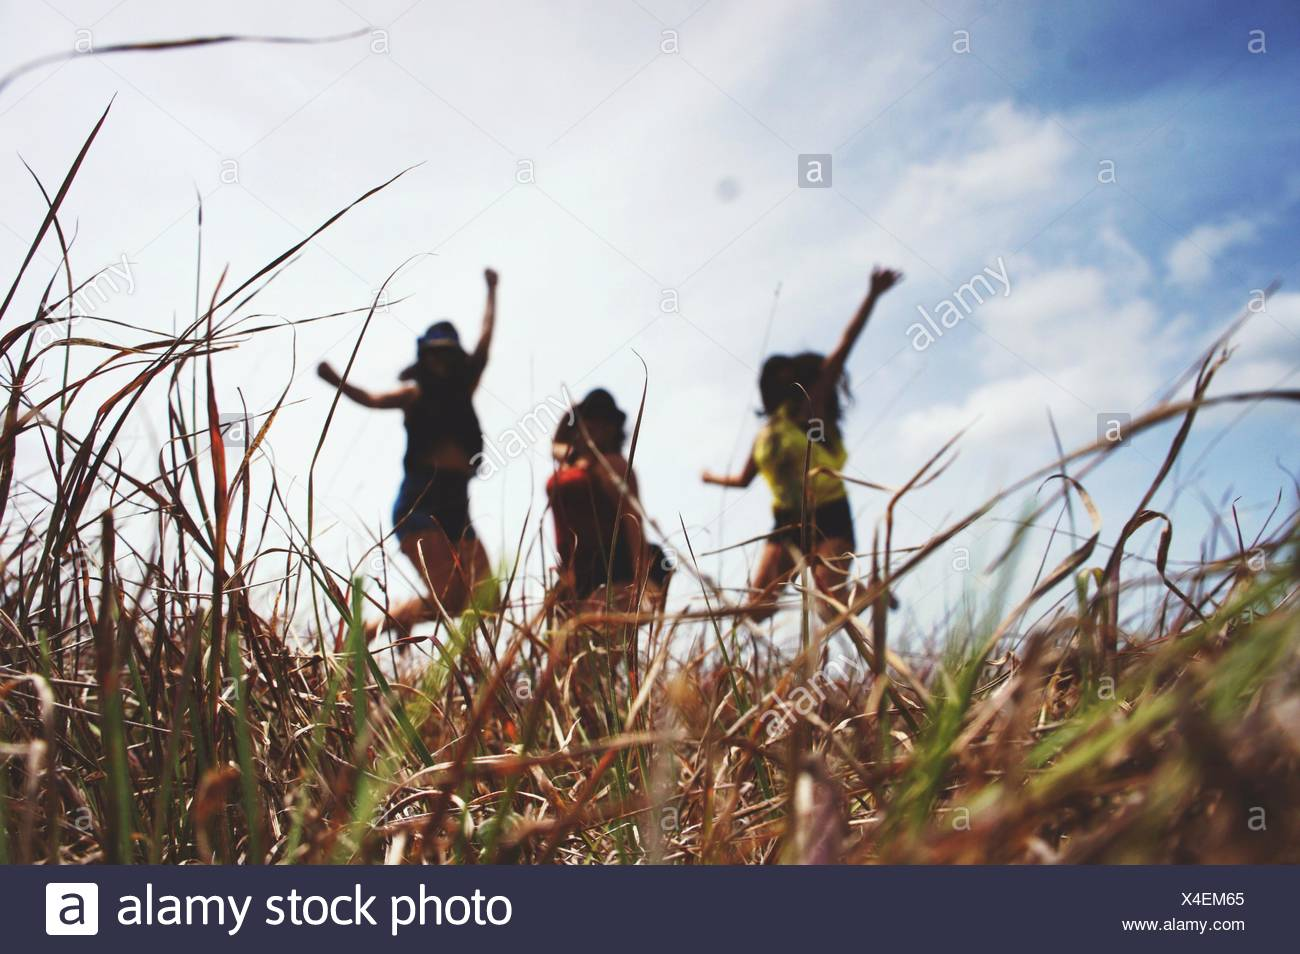 Women Jumping On Field Against Cloudy Sky - Stock Image